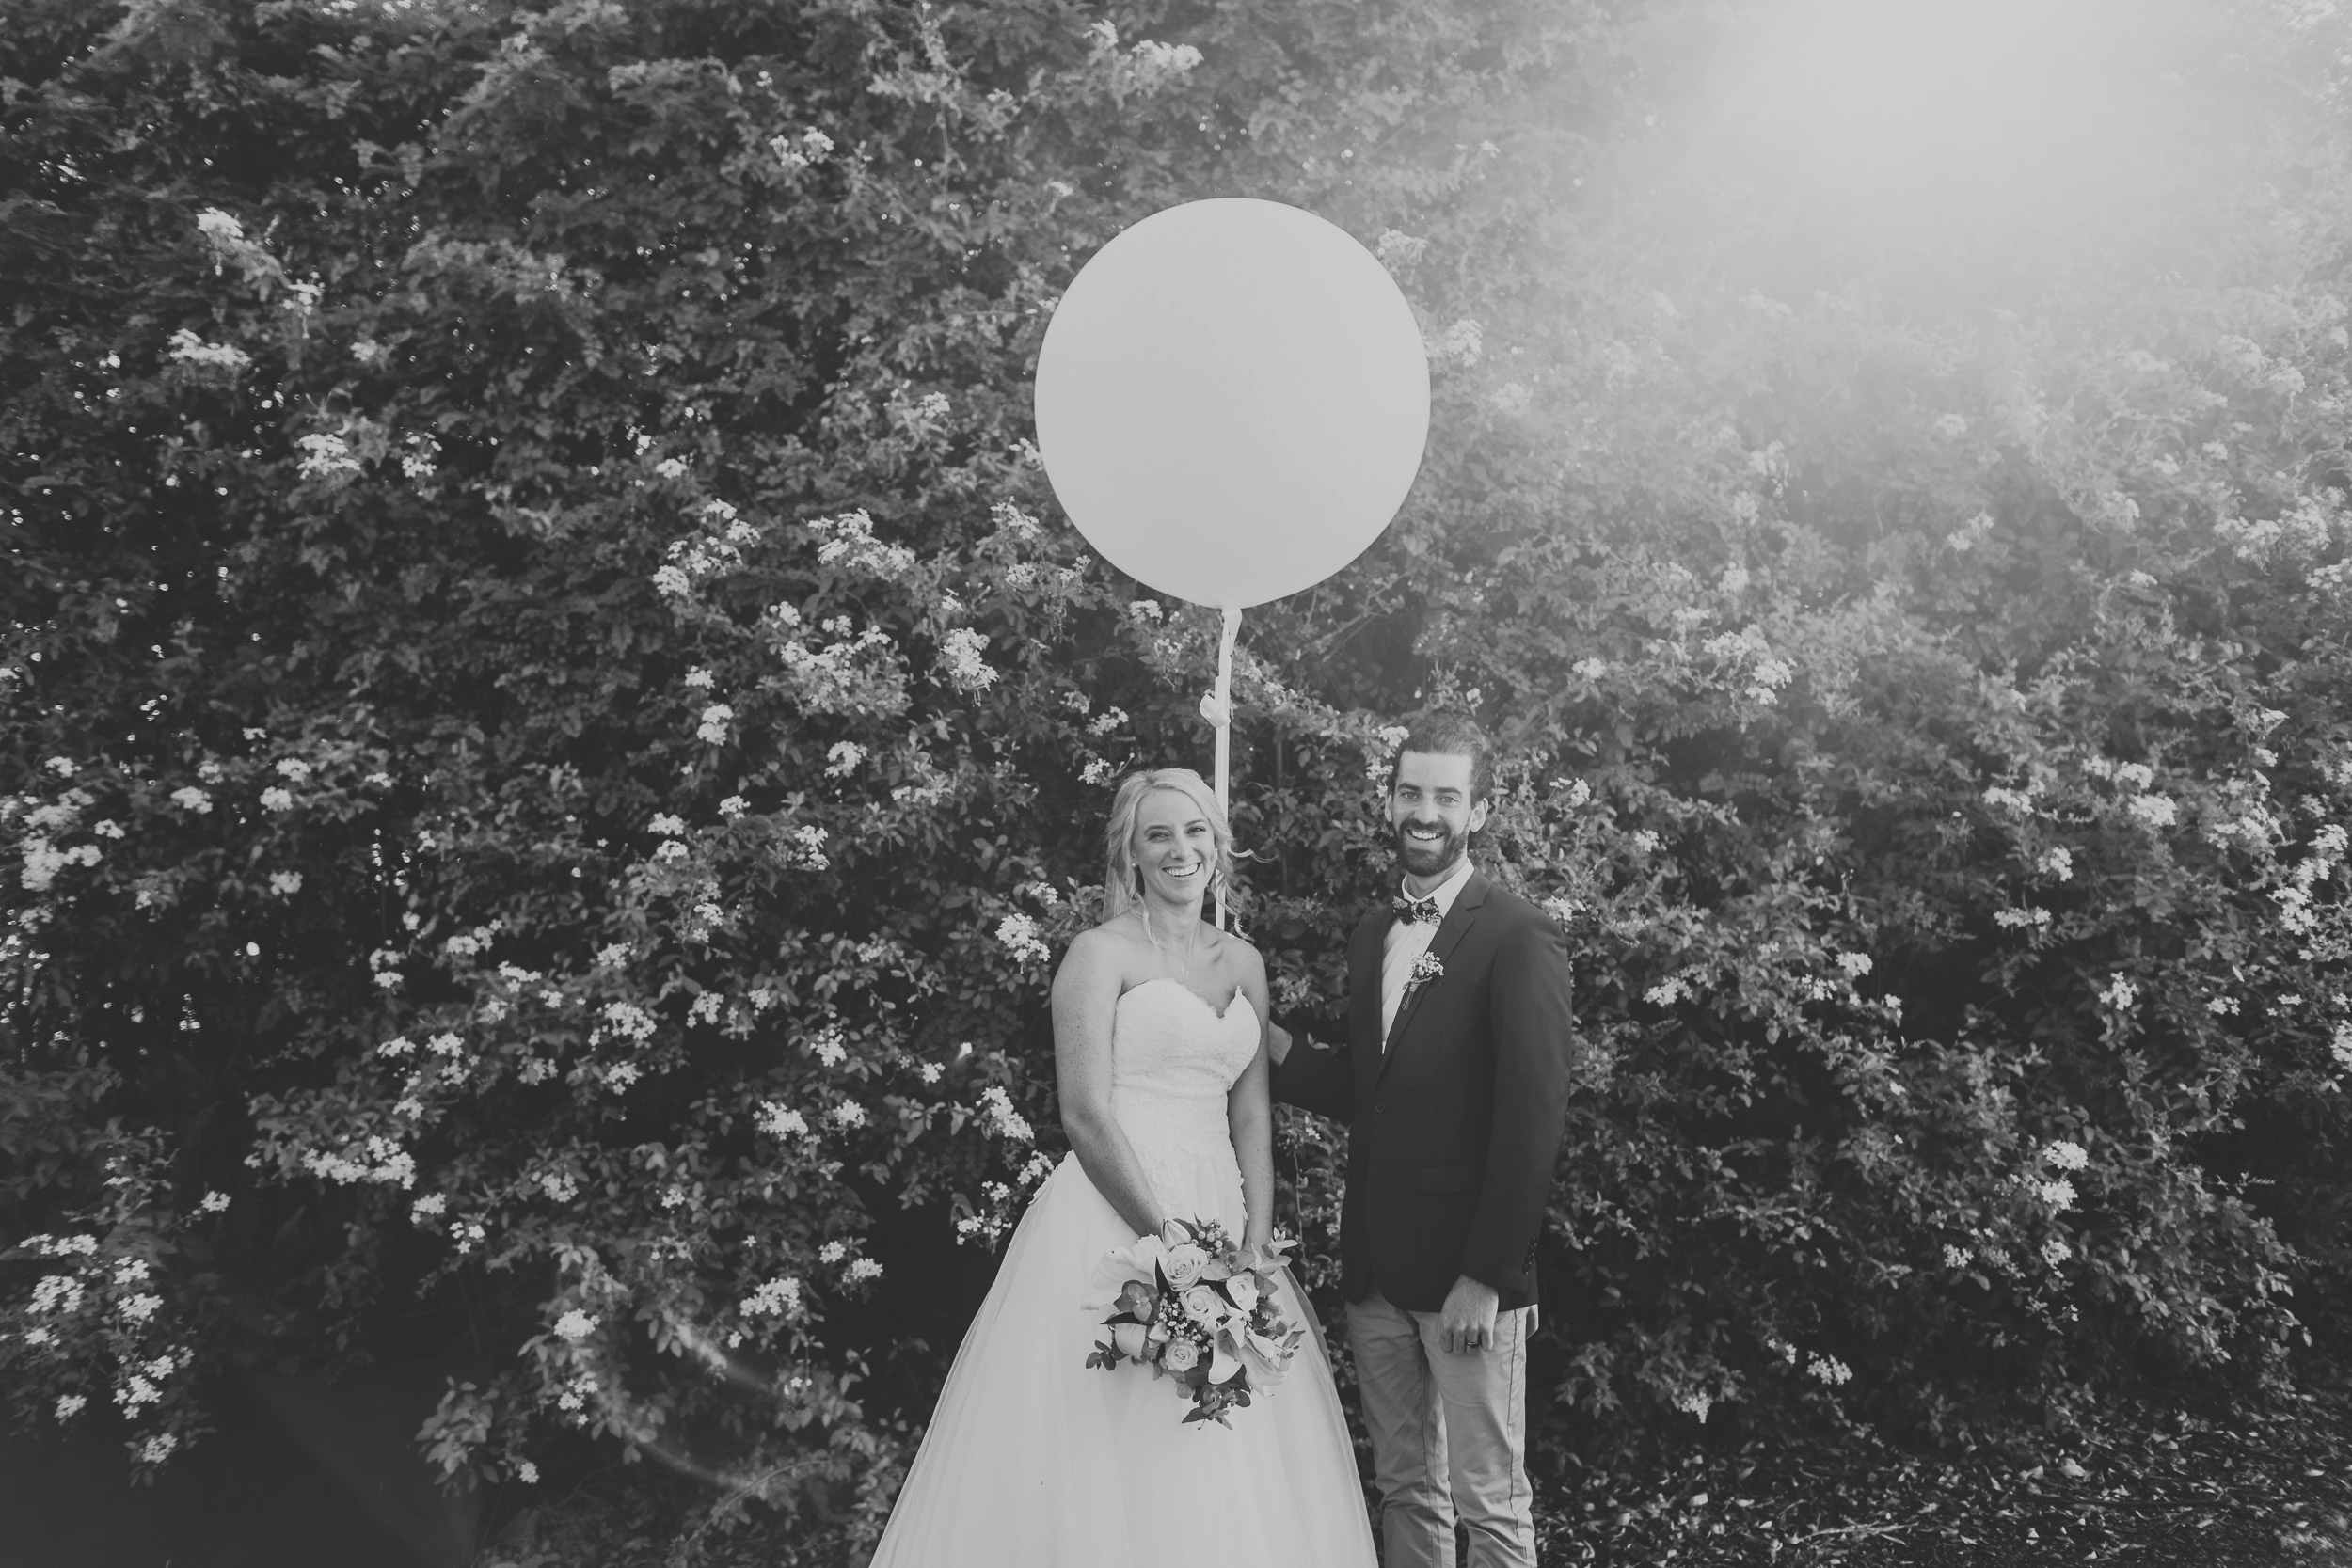 20170311 - Holly & Dan Coolangatta Estate Wedding | 278-2.jpg